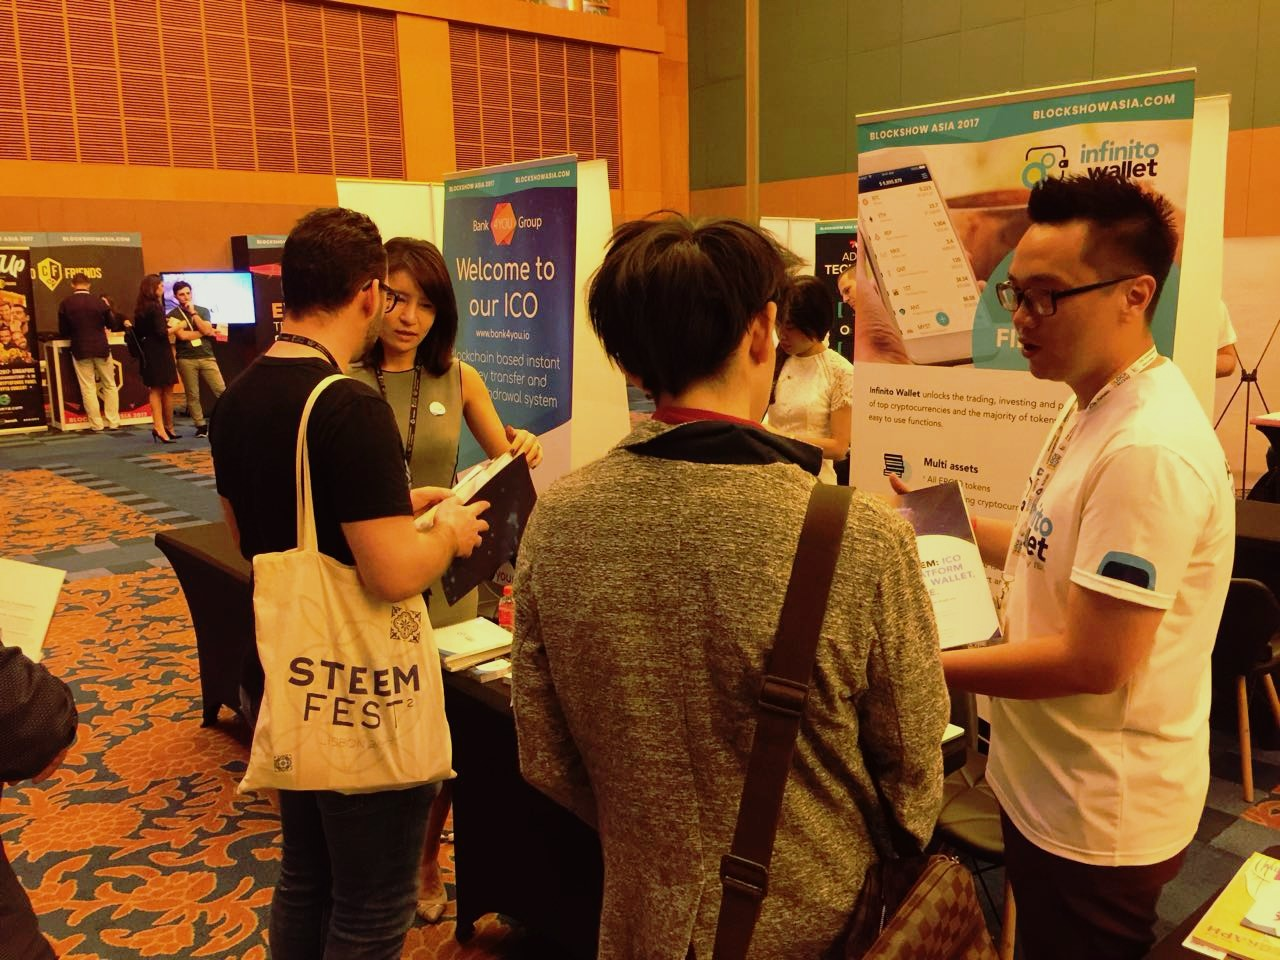 Blockchain Development Highlighted at BlockShow Asia